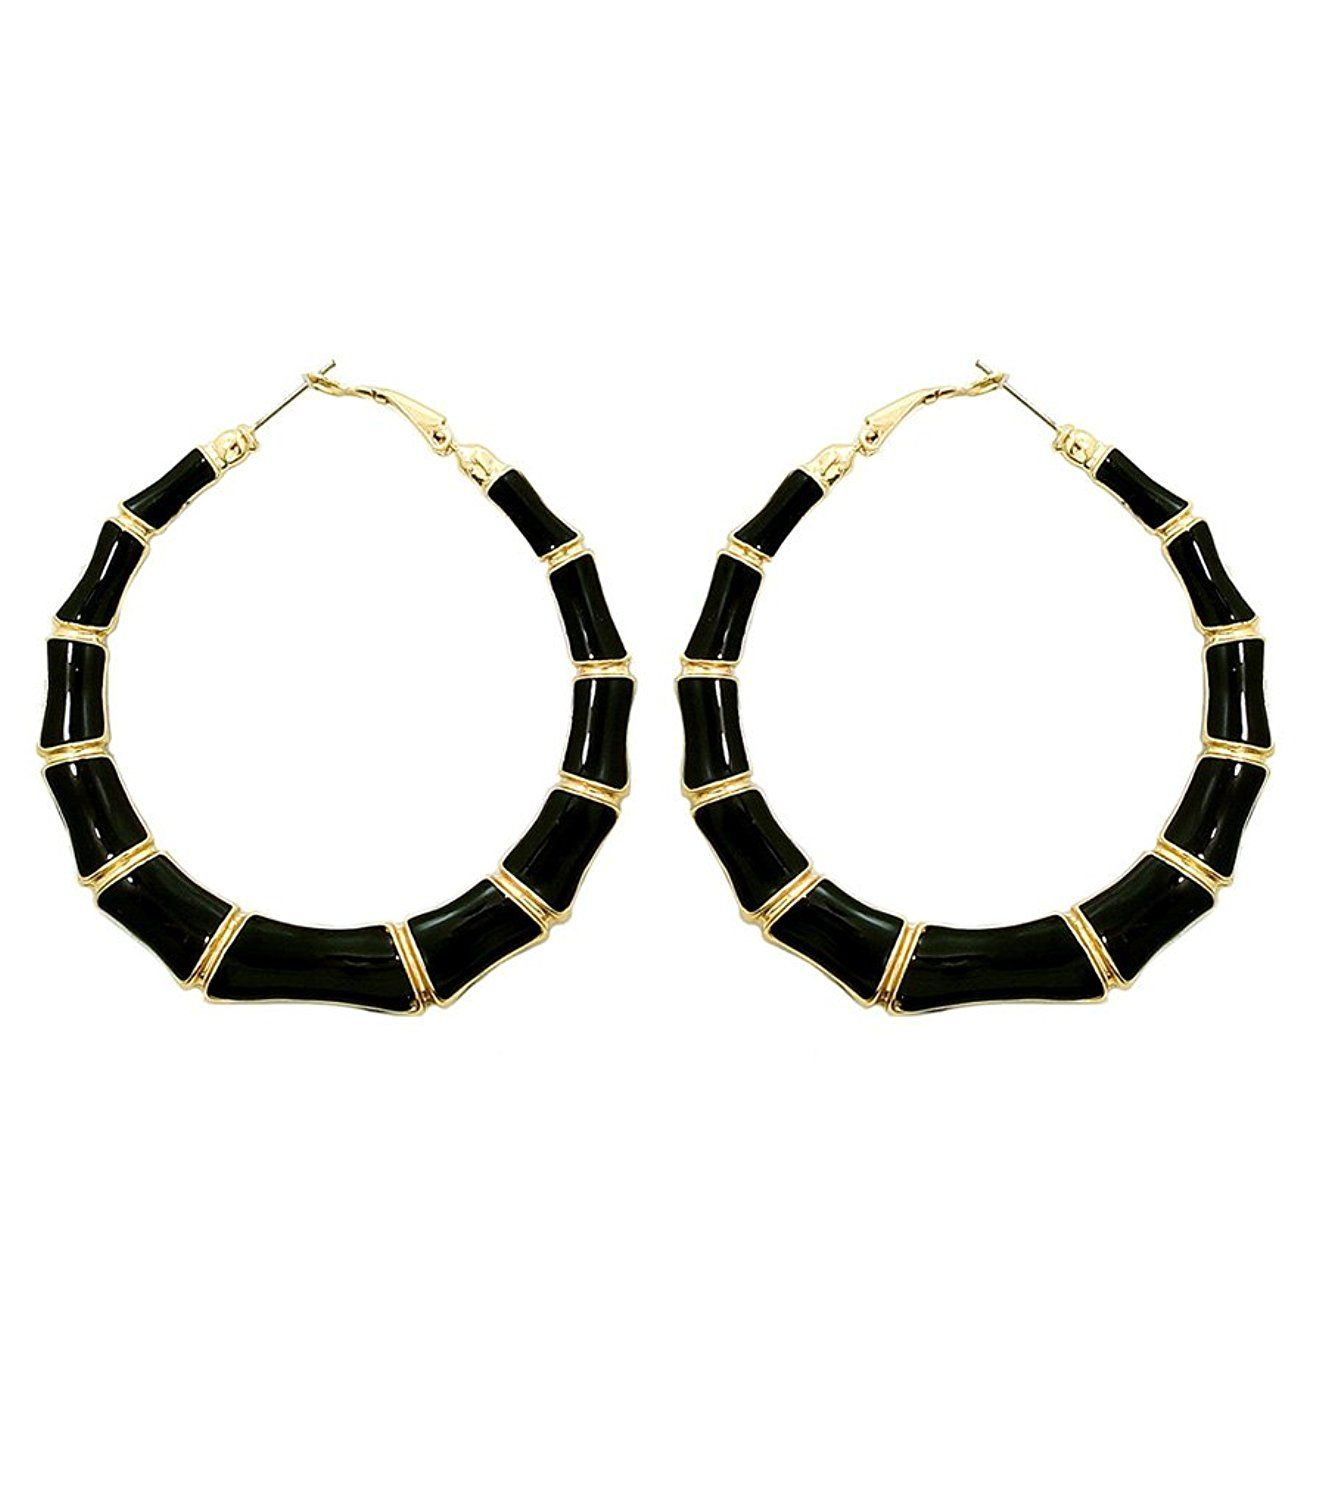 bd8ce10f724ac Belle Pink Women's Gold and Black Tone Bamboo Hoop Earrings, 2.5 ...